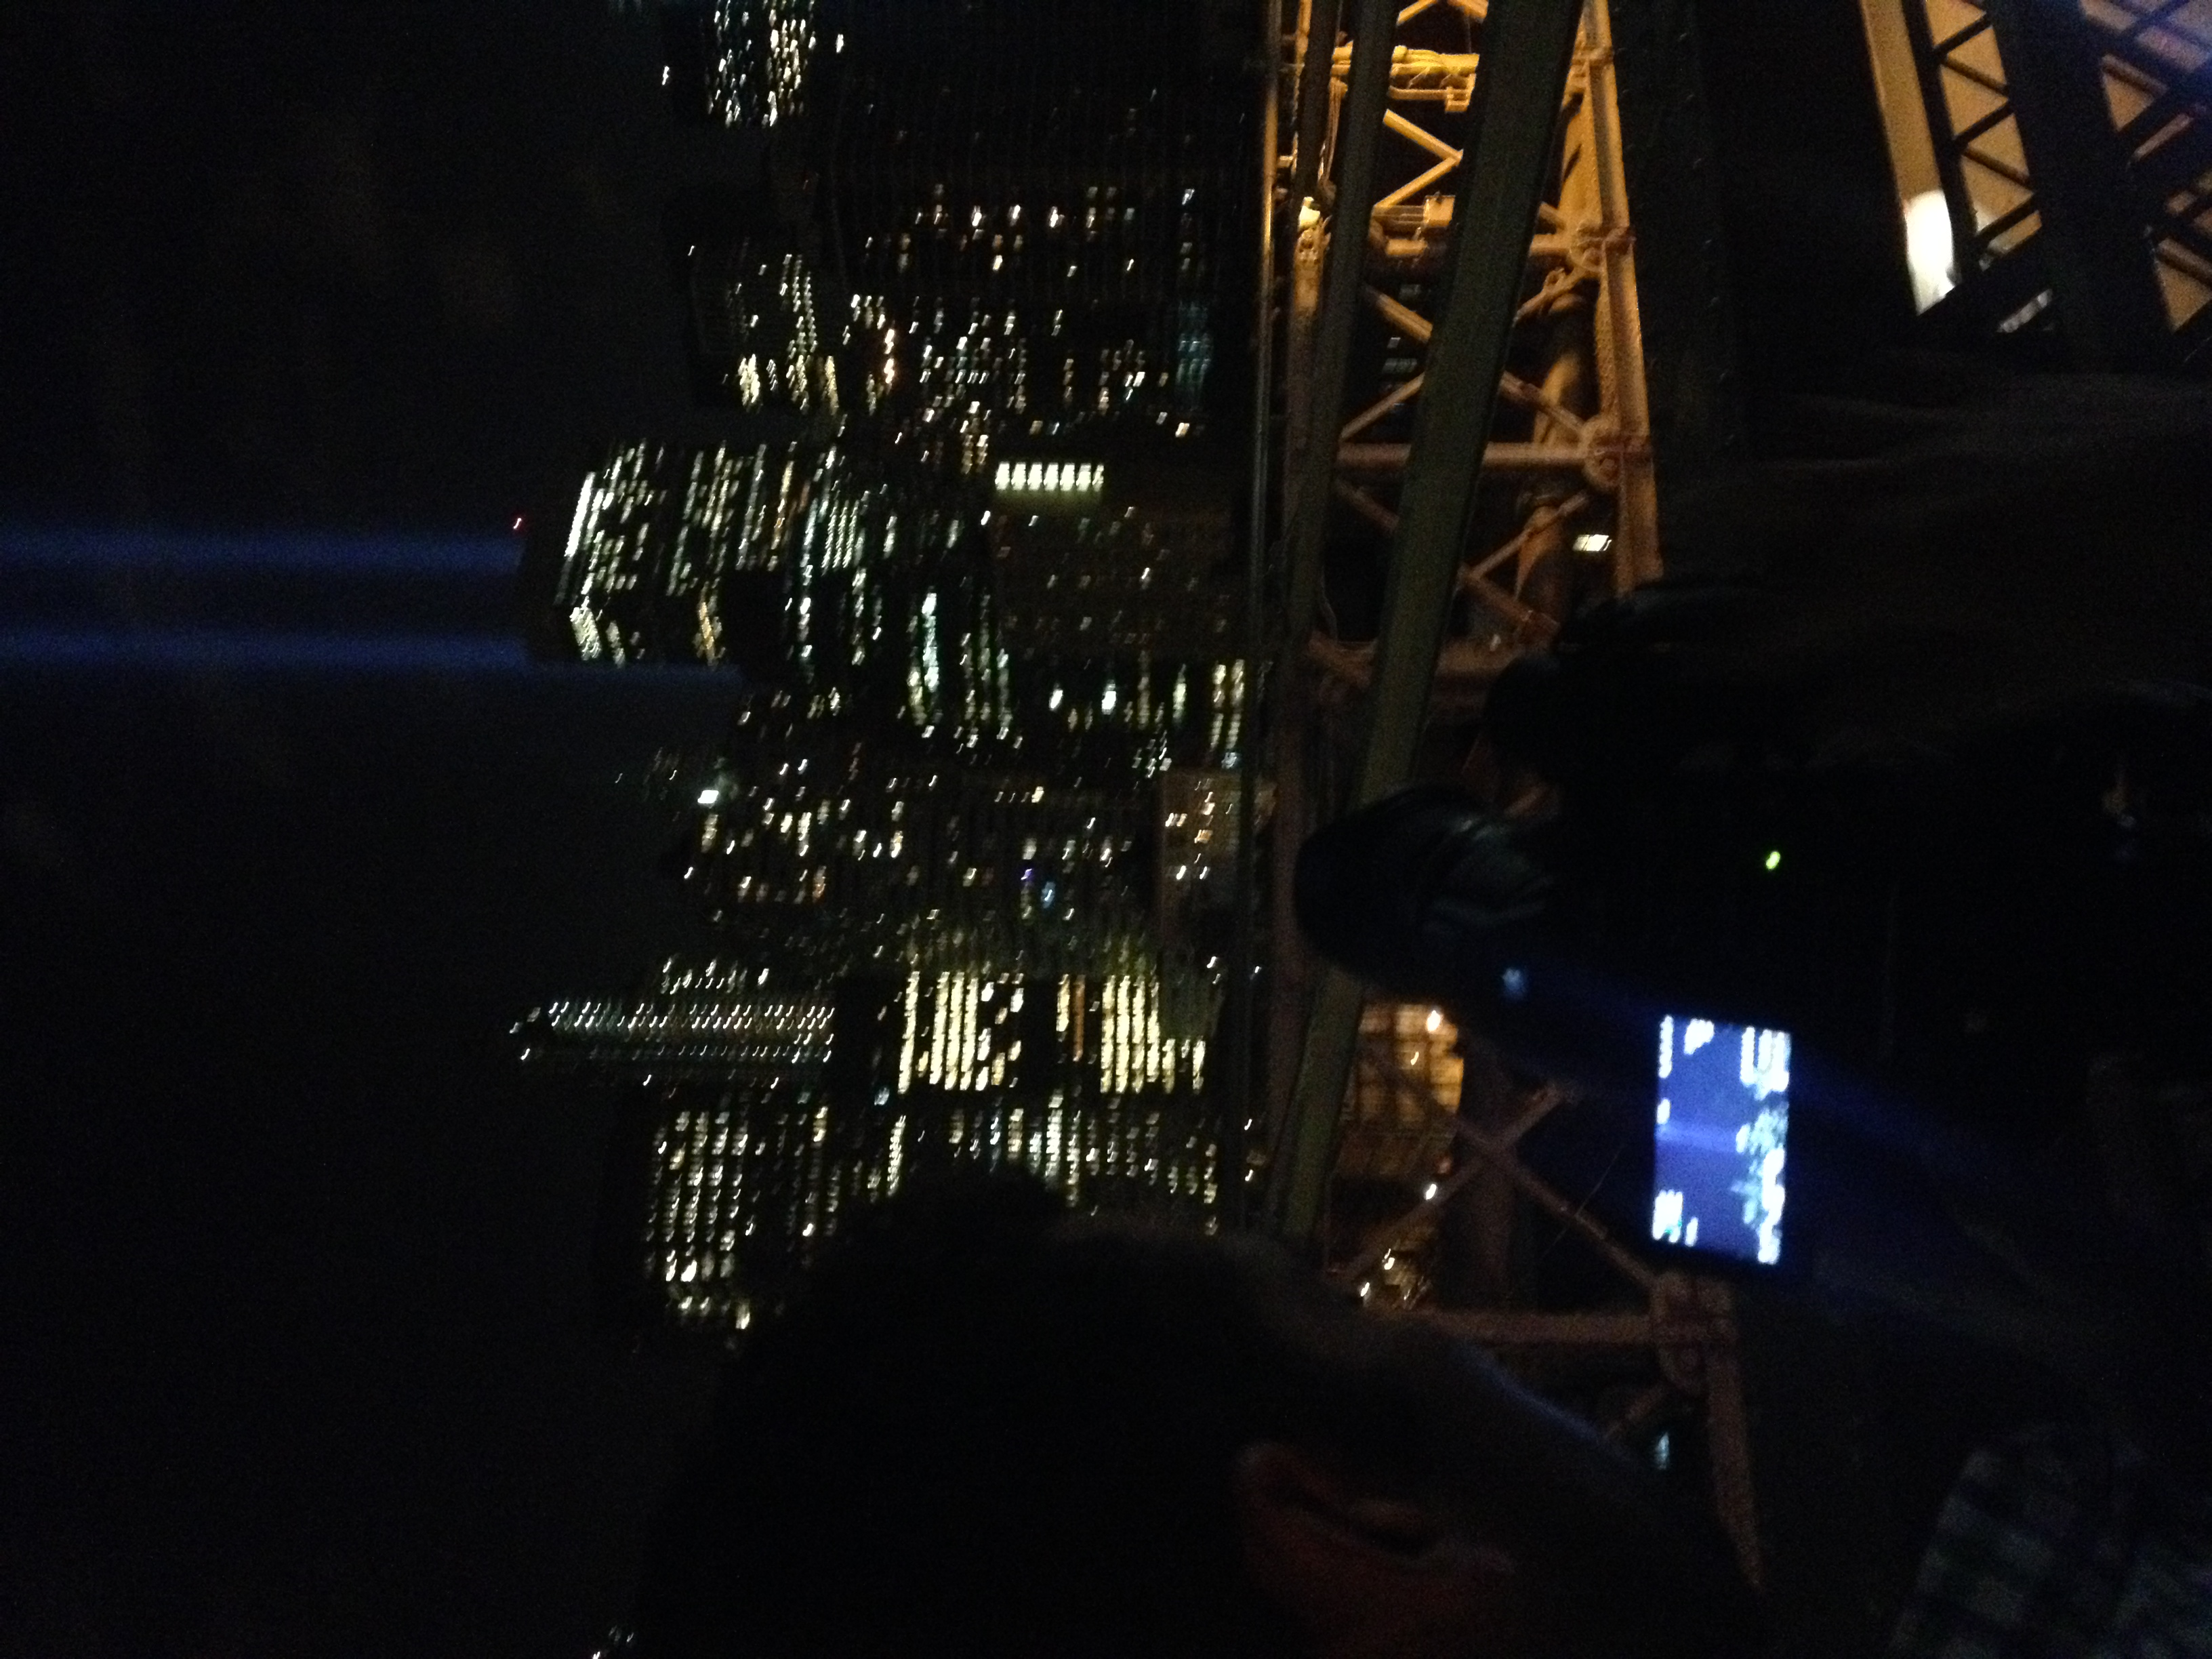 September 11th, filming on the Brooklyn Bridge for a few shots.